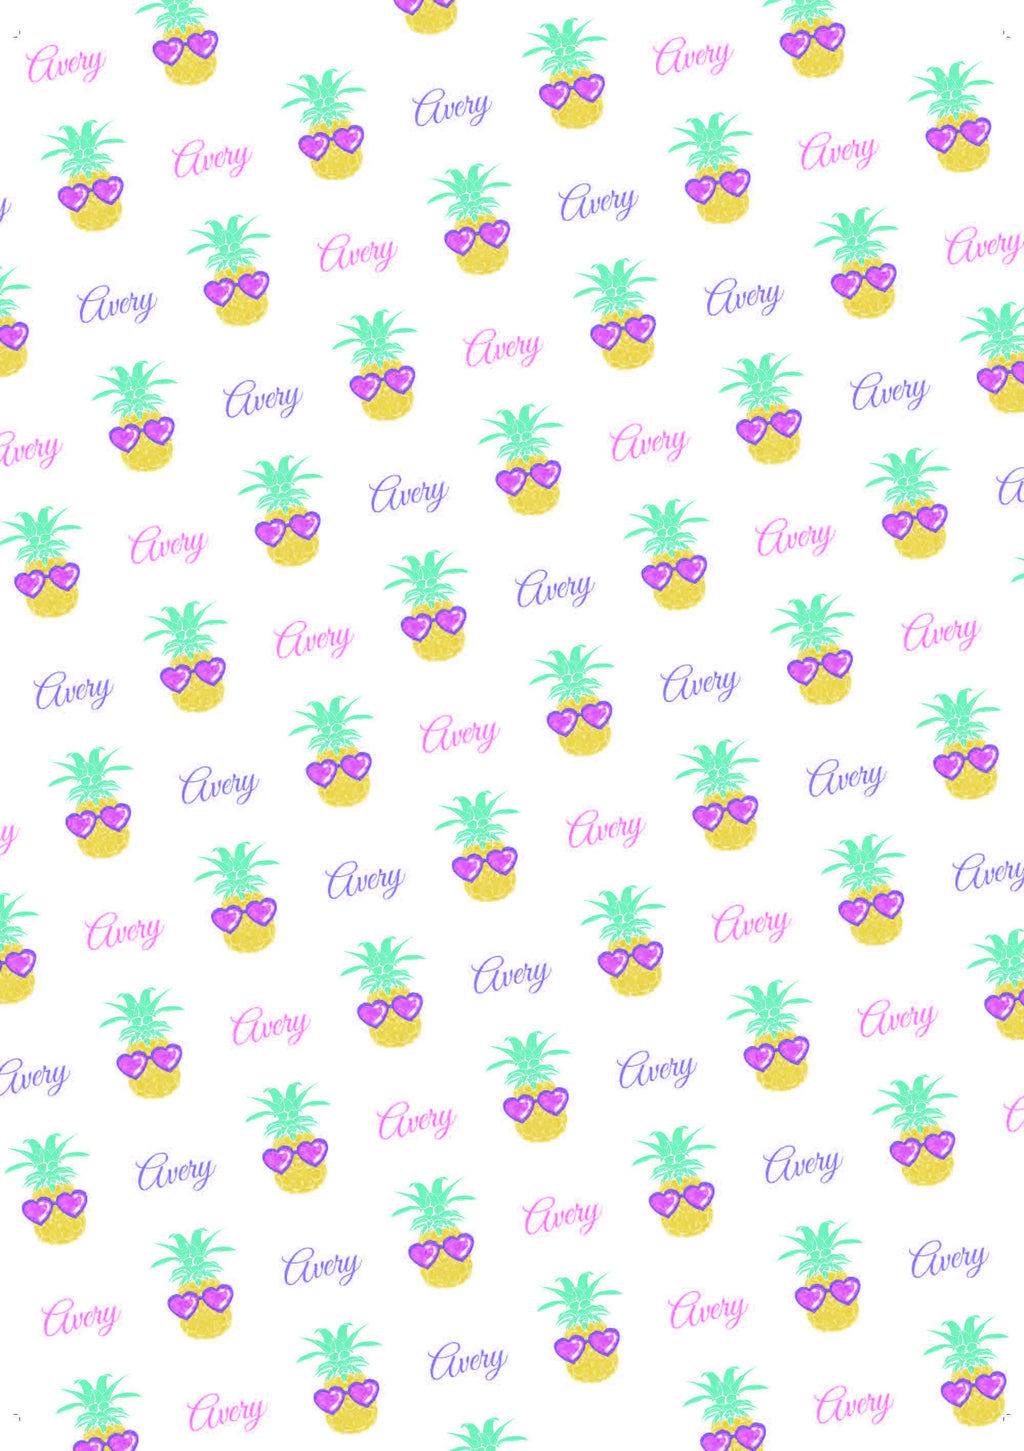 Pineapple Birthday Personalized Birthday Gift Wrap - Potter's Printing